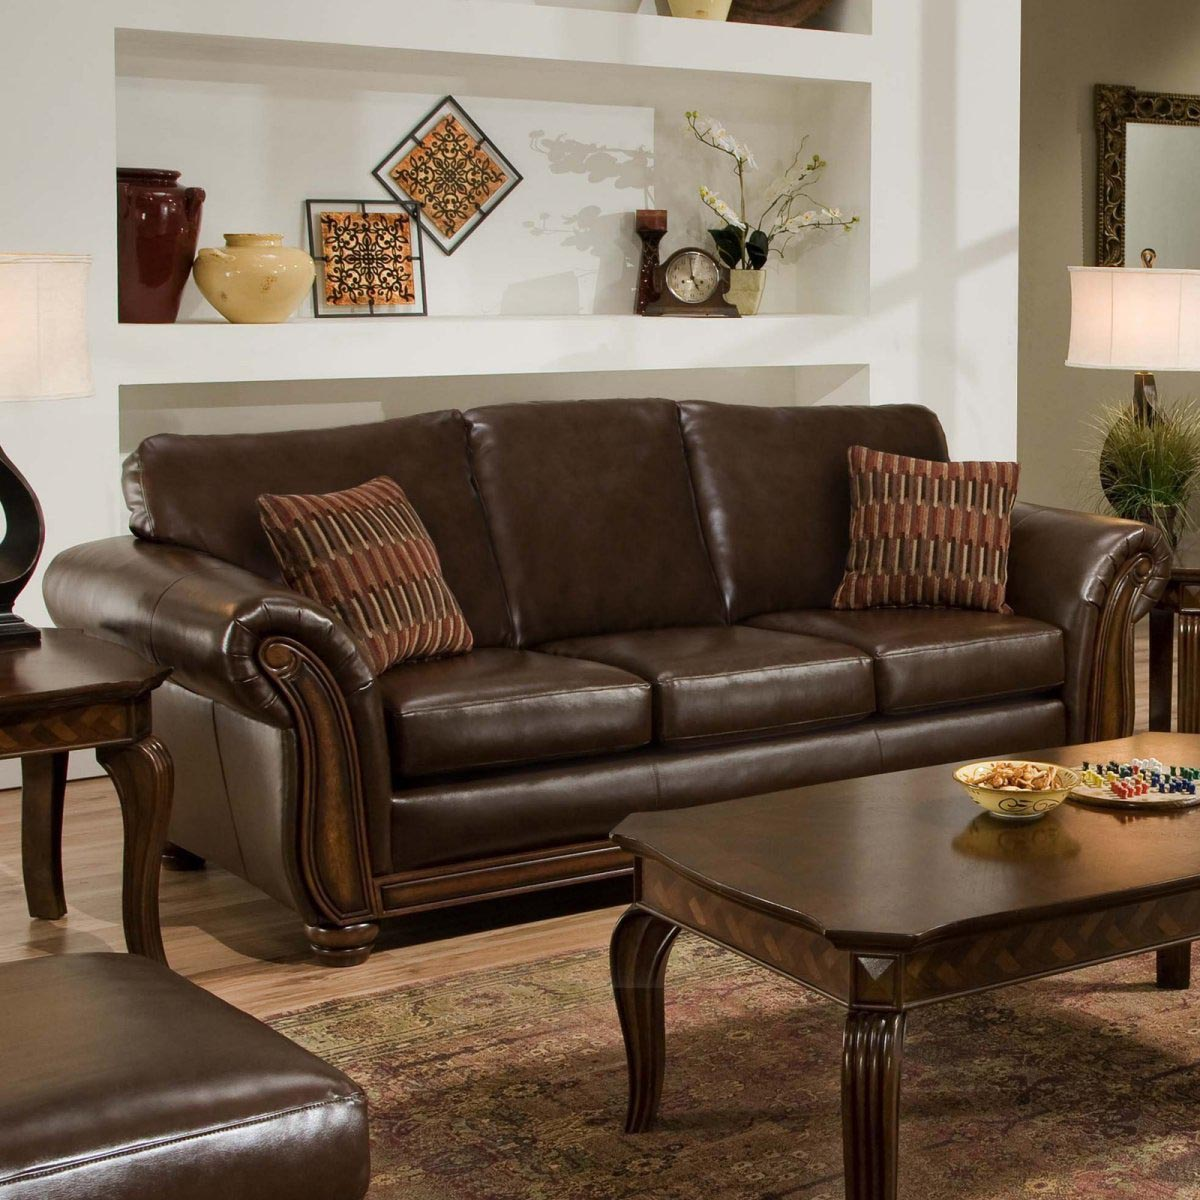 Throw Pillows for Brown Sofa